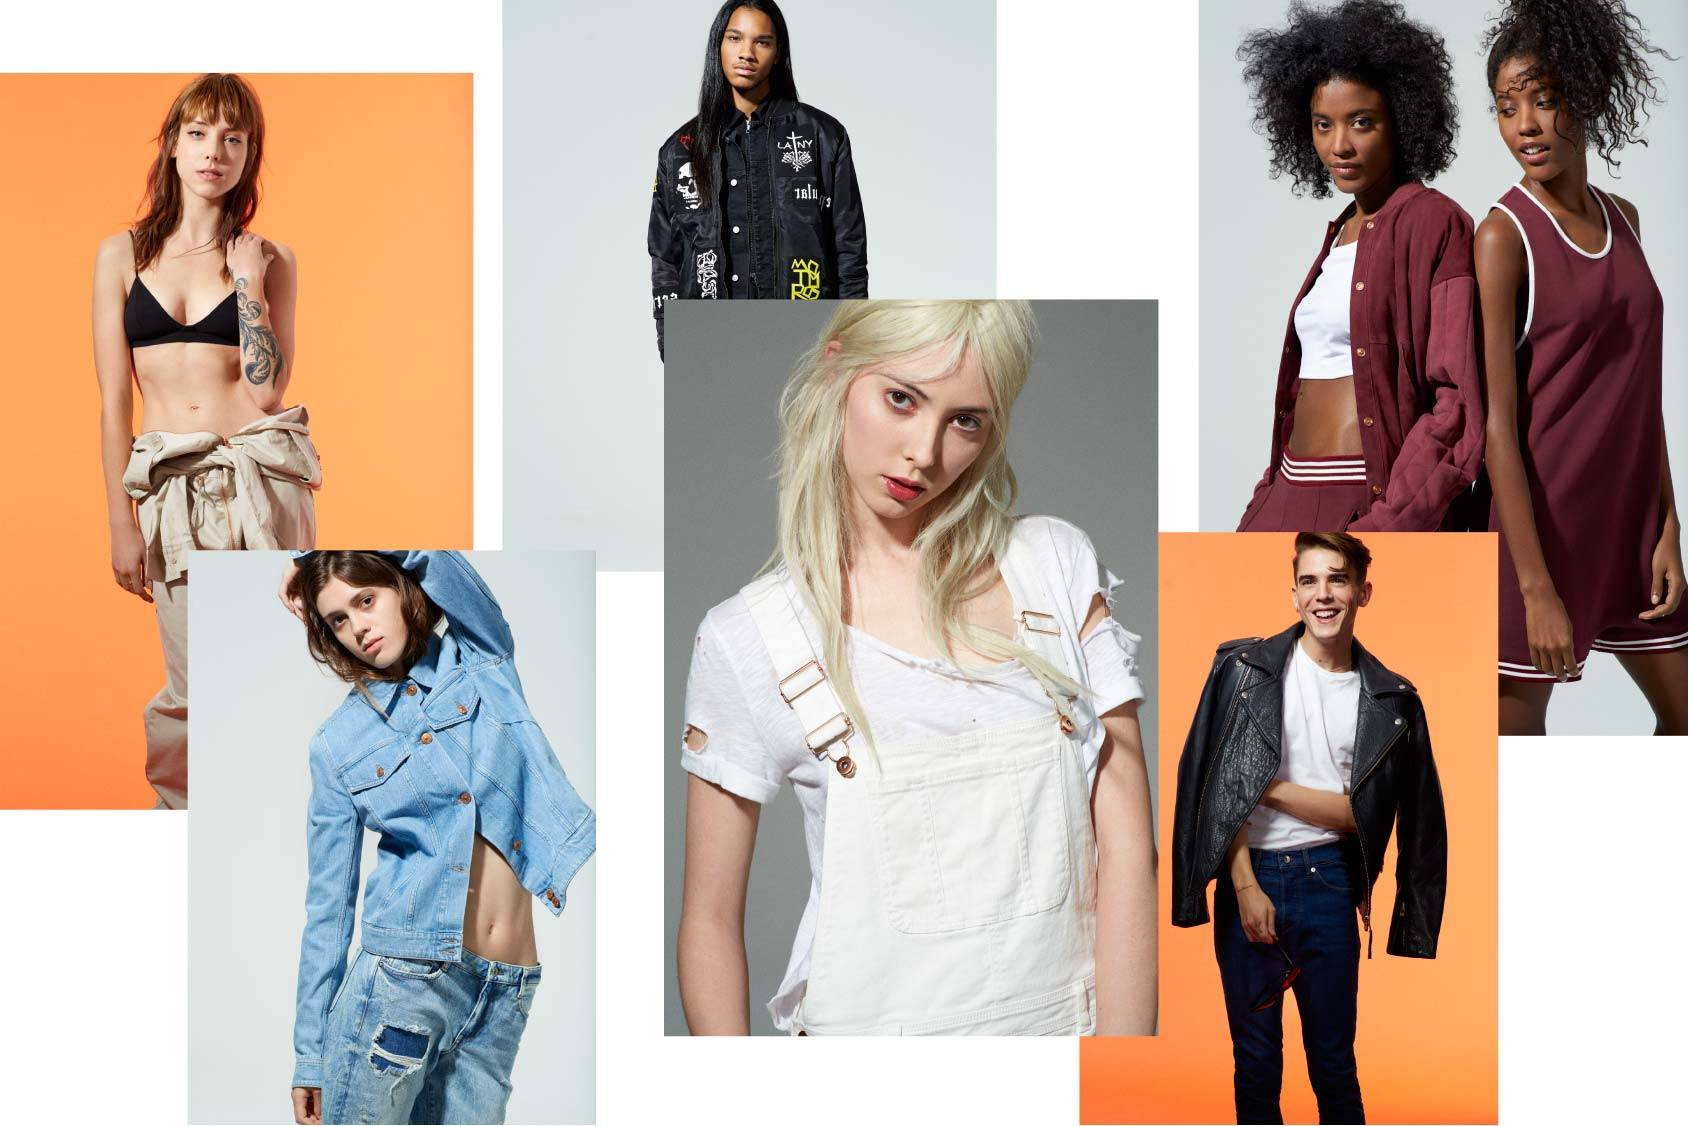 H&M Life has asked young talents to share their hopes and dreams for the future.